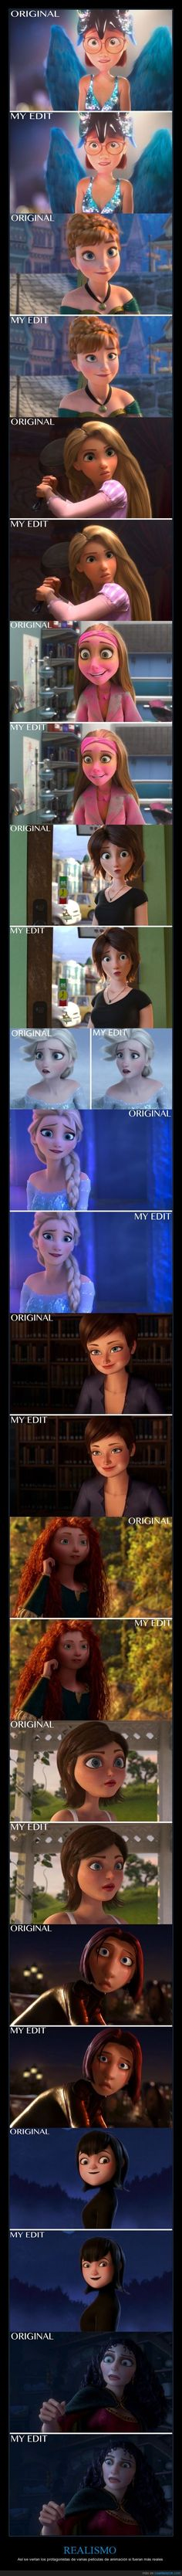 More realistic animated characters Humour Disney, Funny Disney Memes, Funny Memes, Film Disney, Disney Movies, Disney And Dreamworks, Disney Pixar, Disney Princess Memes, Arte Nerd